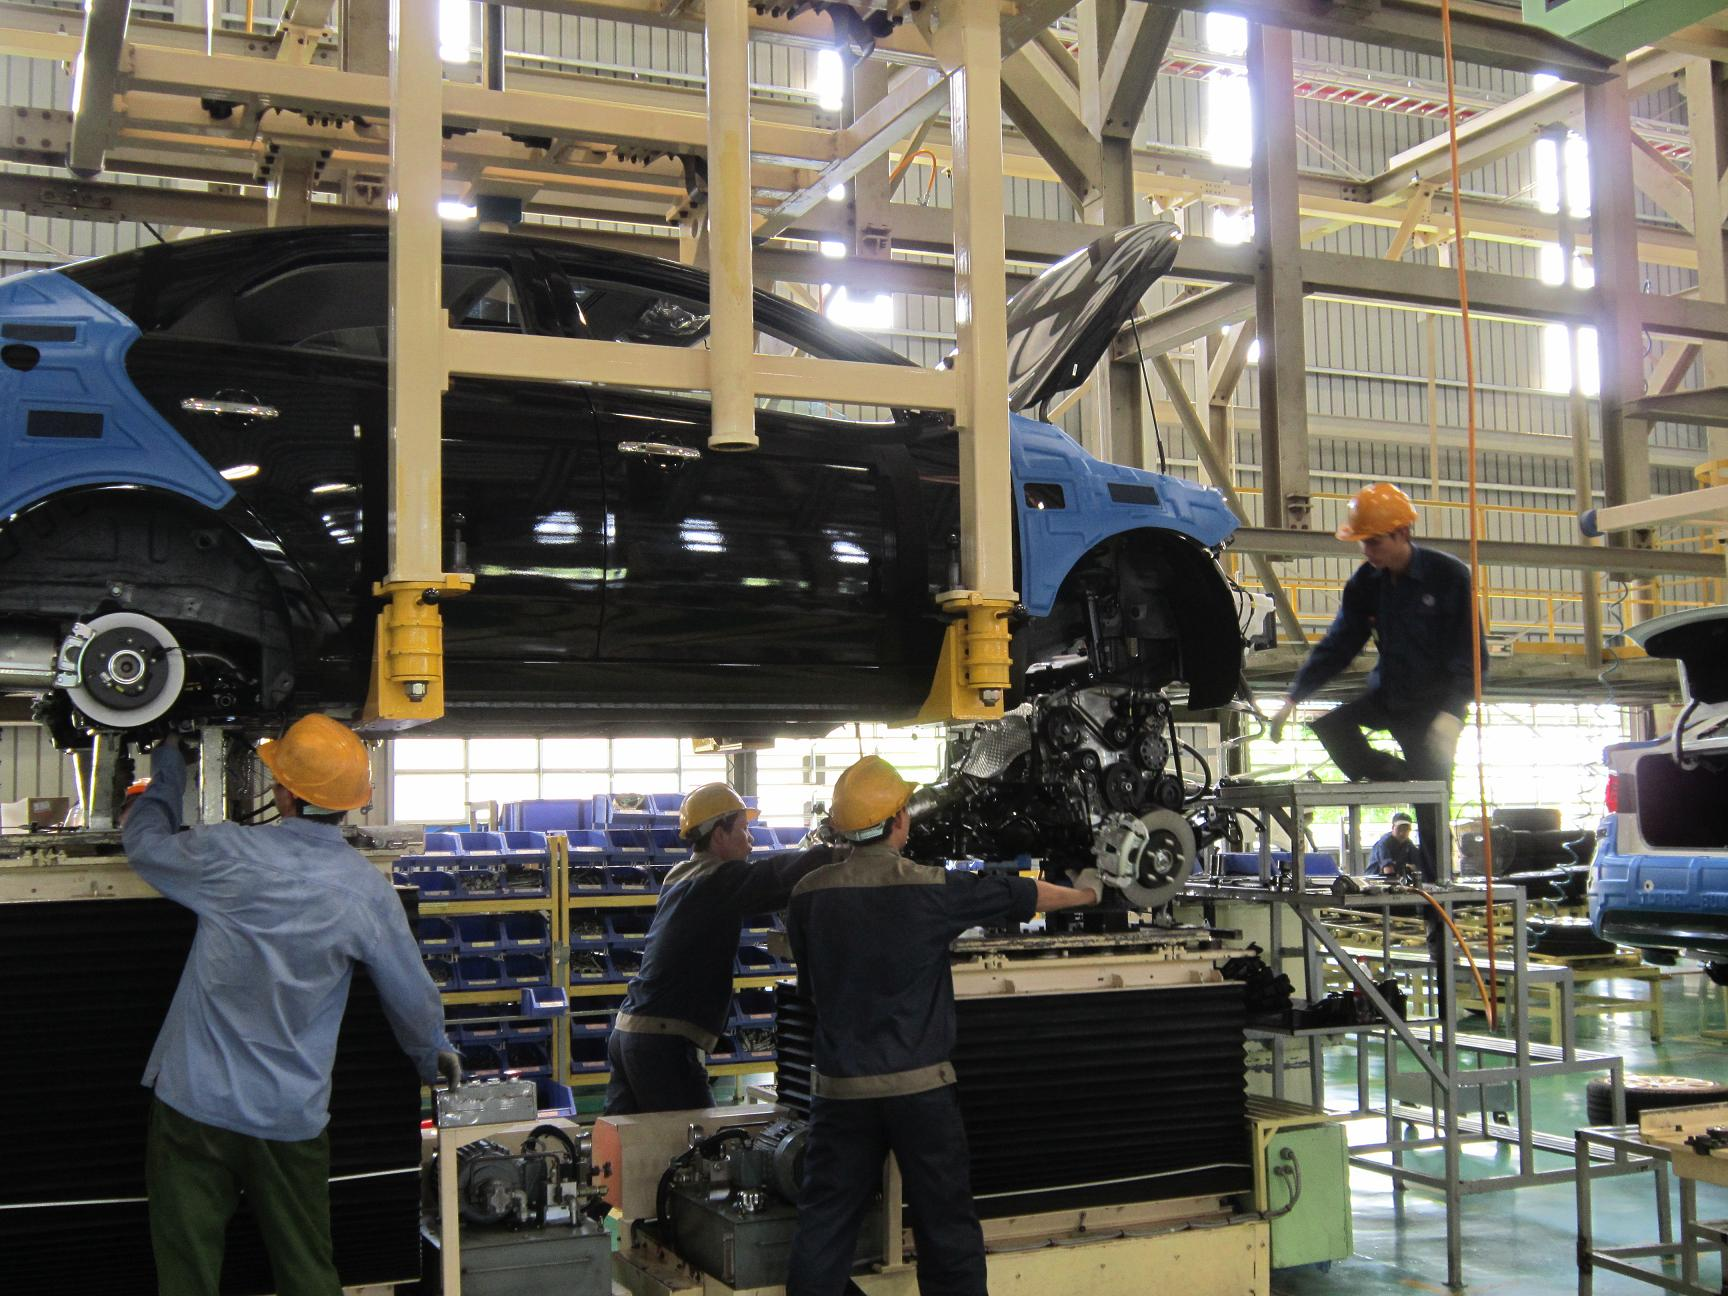 An assembly workshop of Chu Lai- Truong Hai Automobile Joint Stock Company  (Photo: P.C.A)